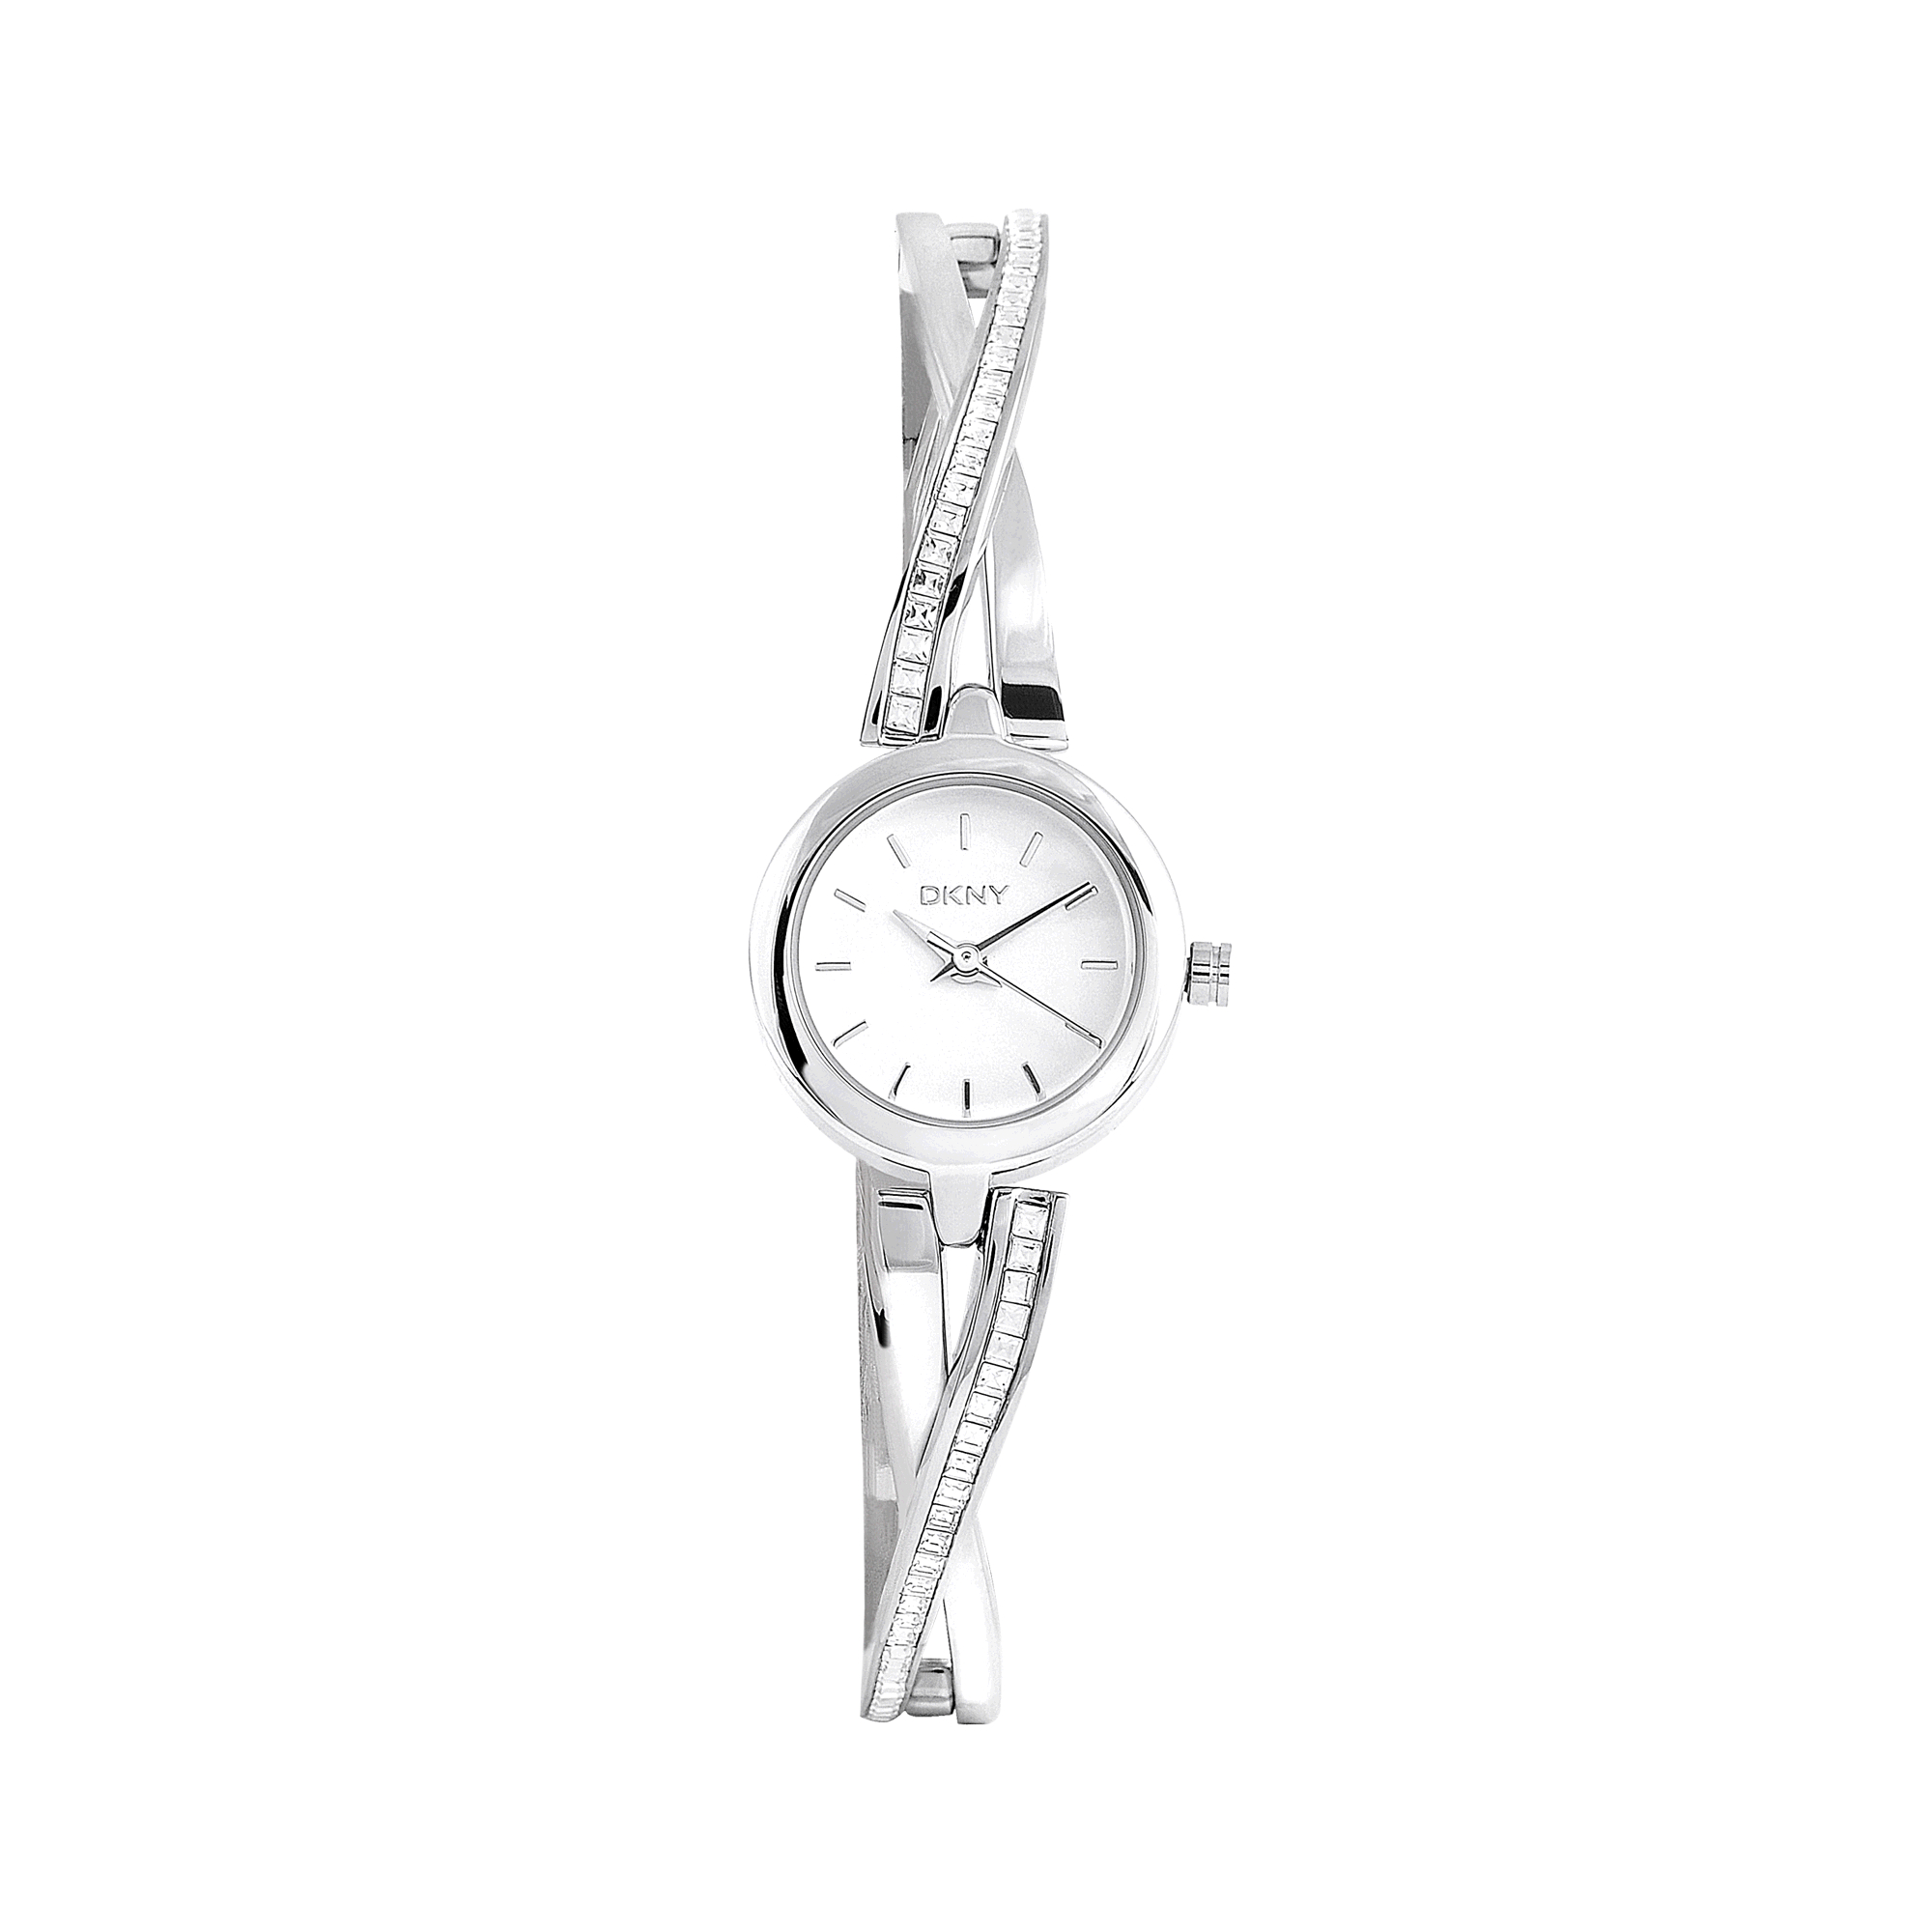 Index php likewise View moreover Index php as well Dkny Chic Crosswalk Ny2173 Watch 1 together with Index. on simple index